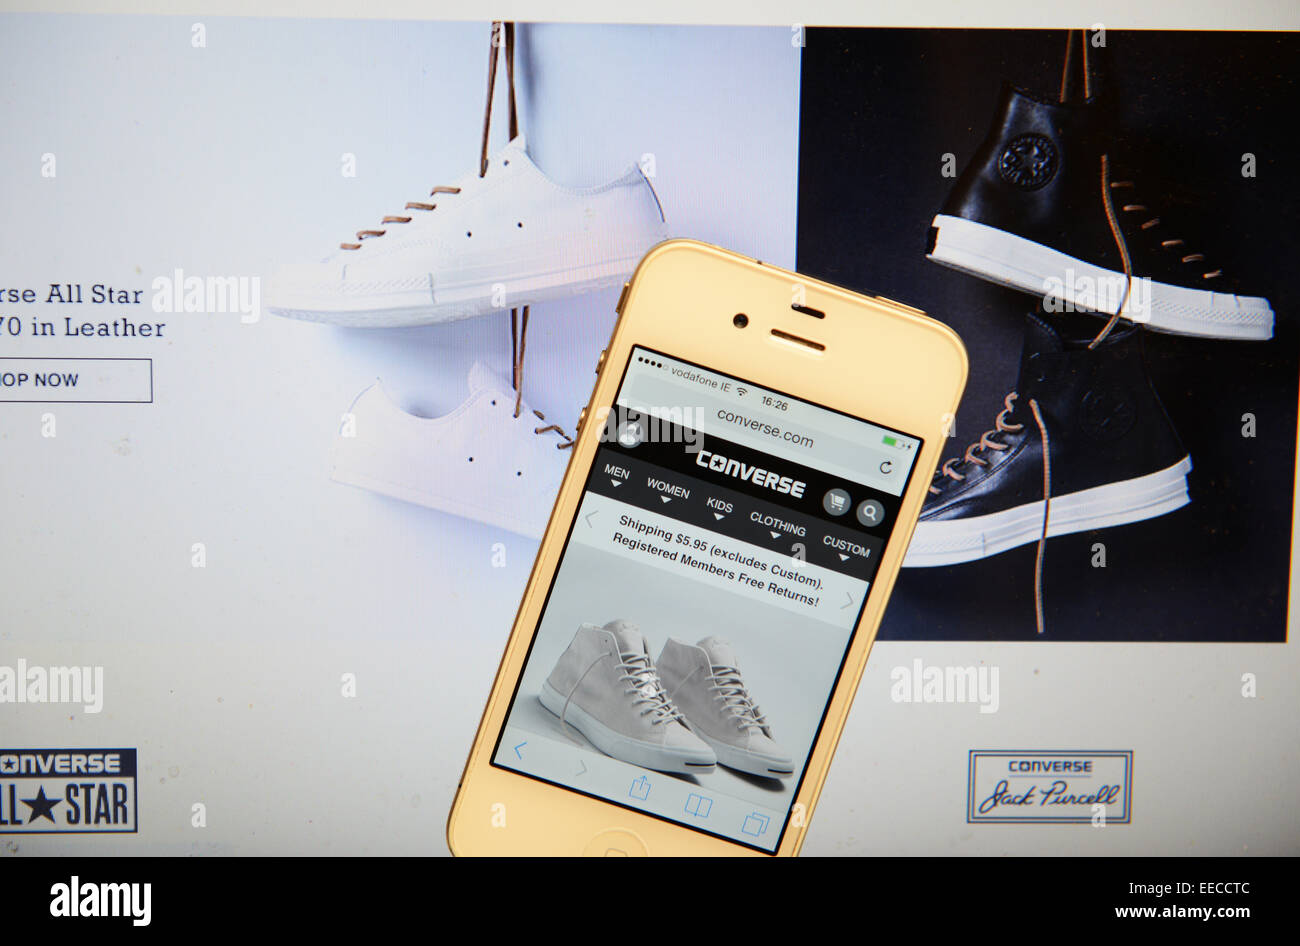 Converse Website and IPhone - Stock Image